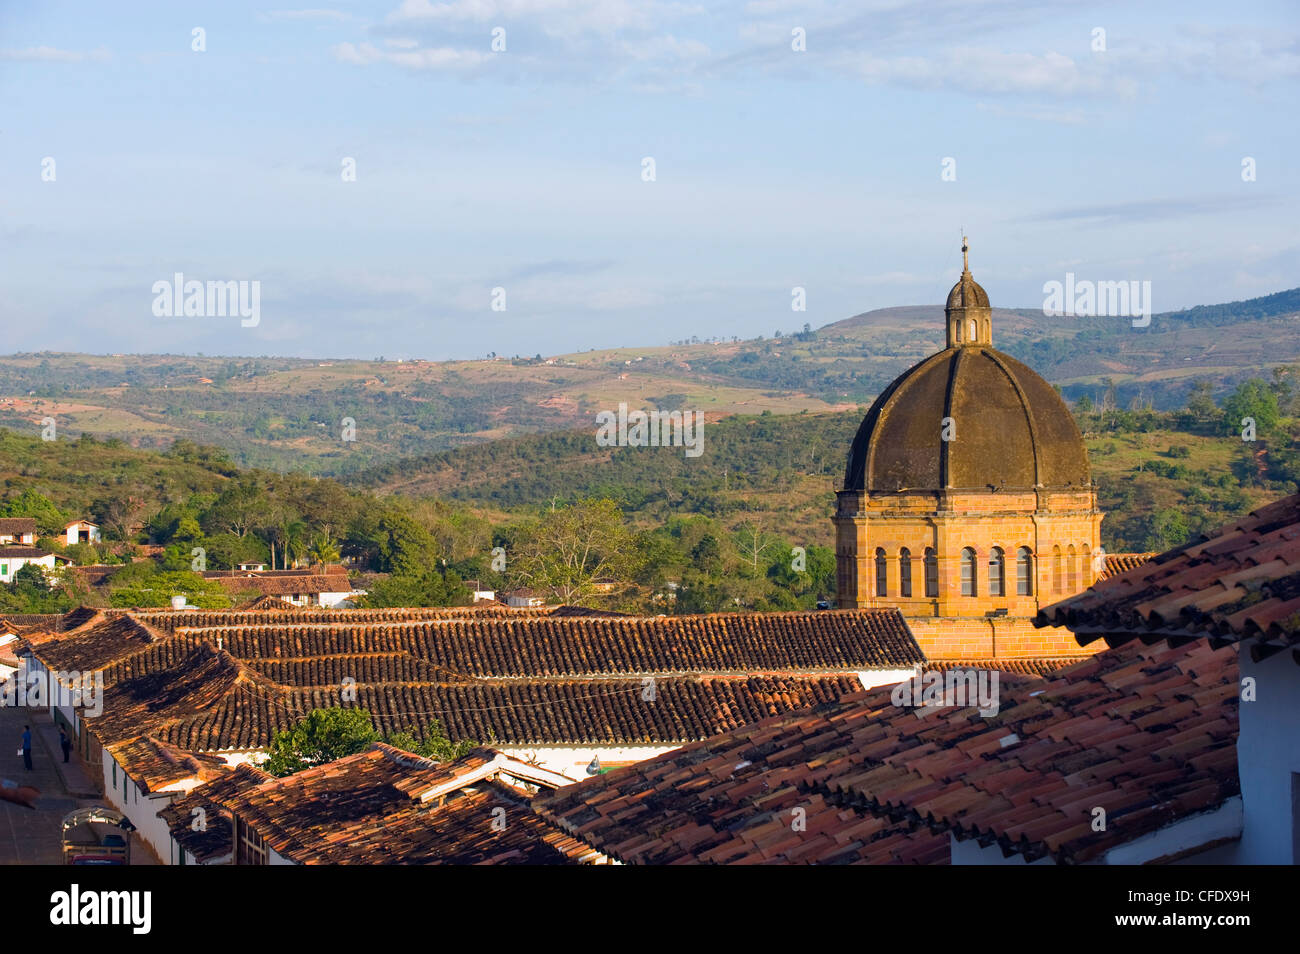 Catedral de la Inmaculada Concepcion (Cathedral of the Immaculate Conception), Barichara, Colombia, South America - Stock Image